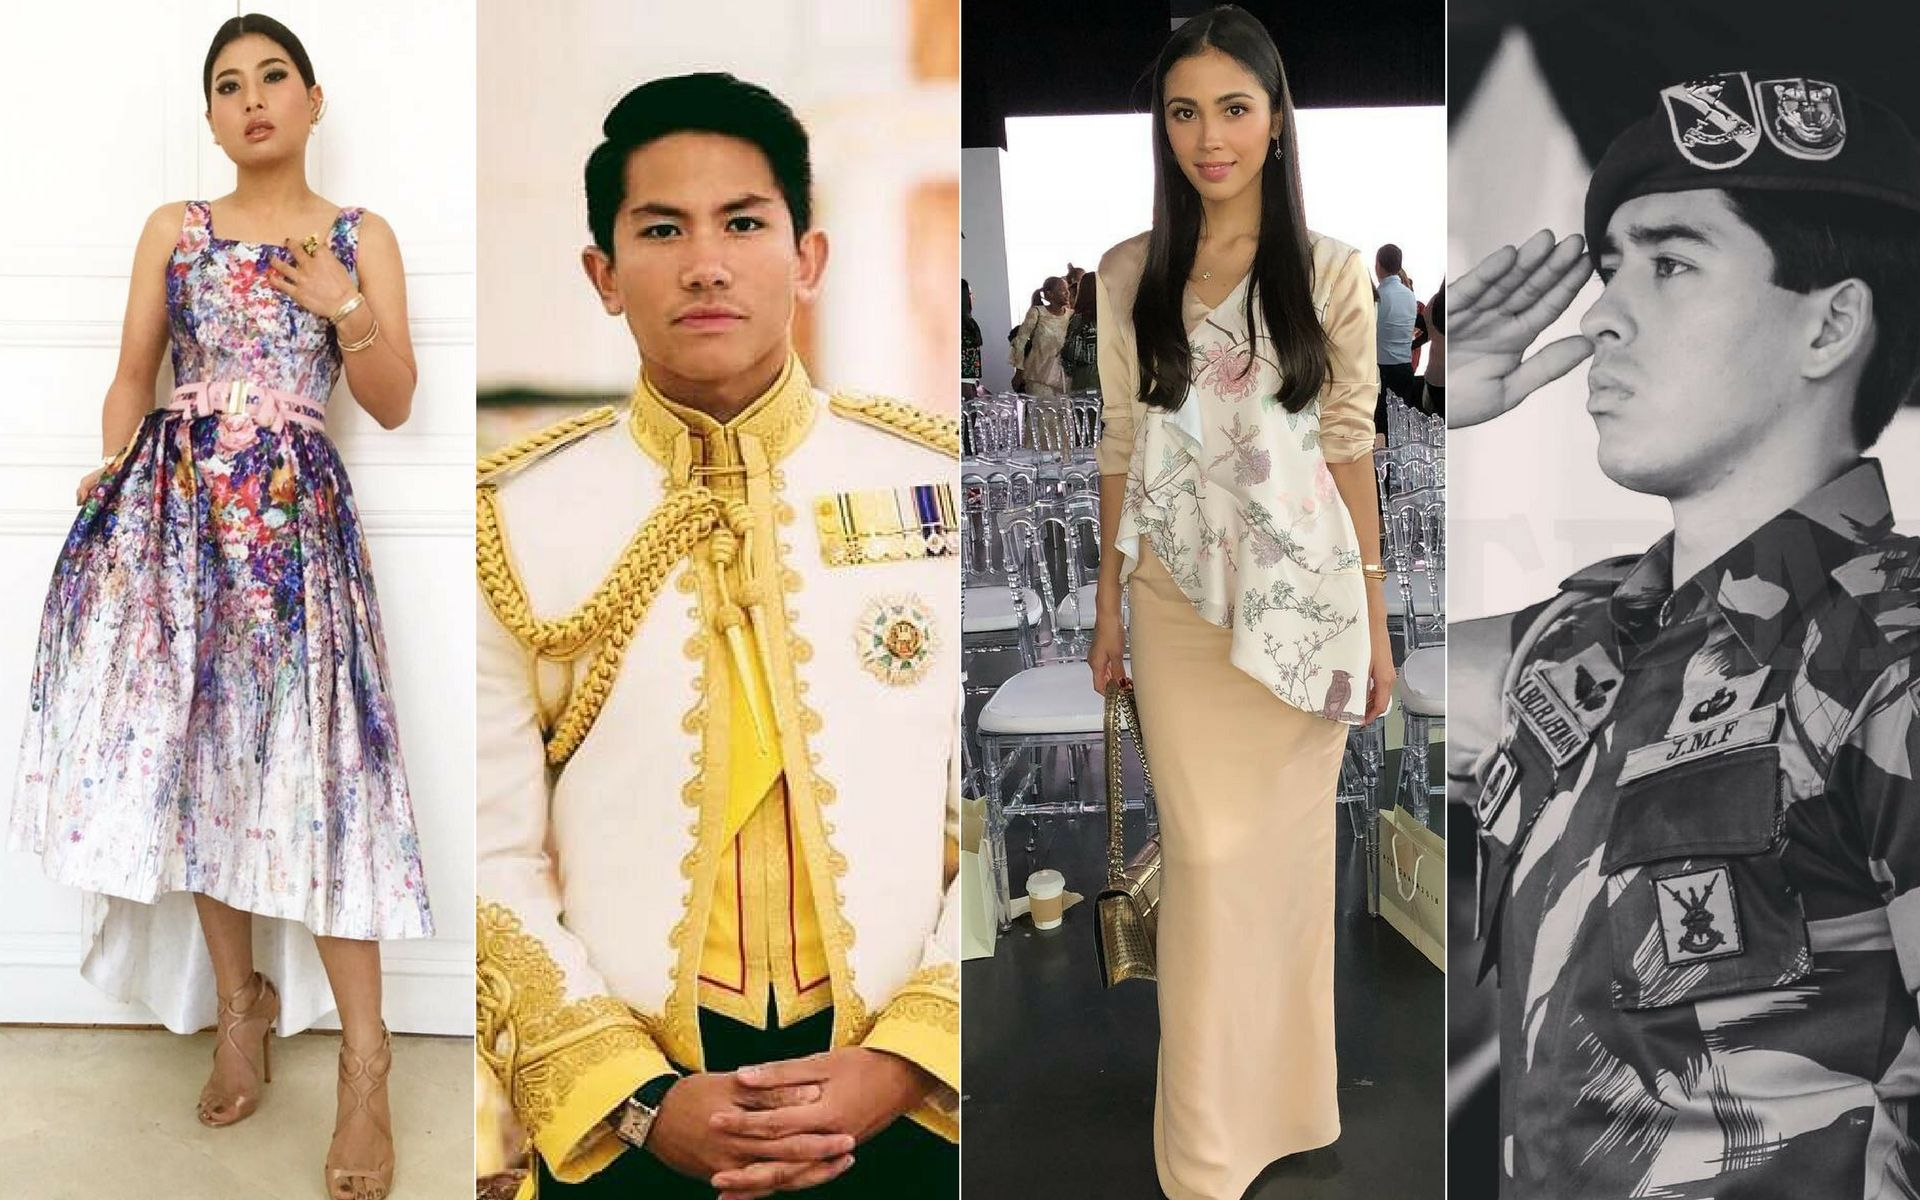 5 Young Royals Of Asia To Follow On Instagram